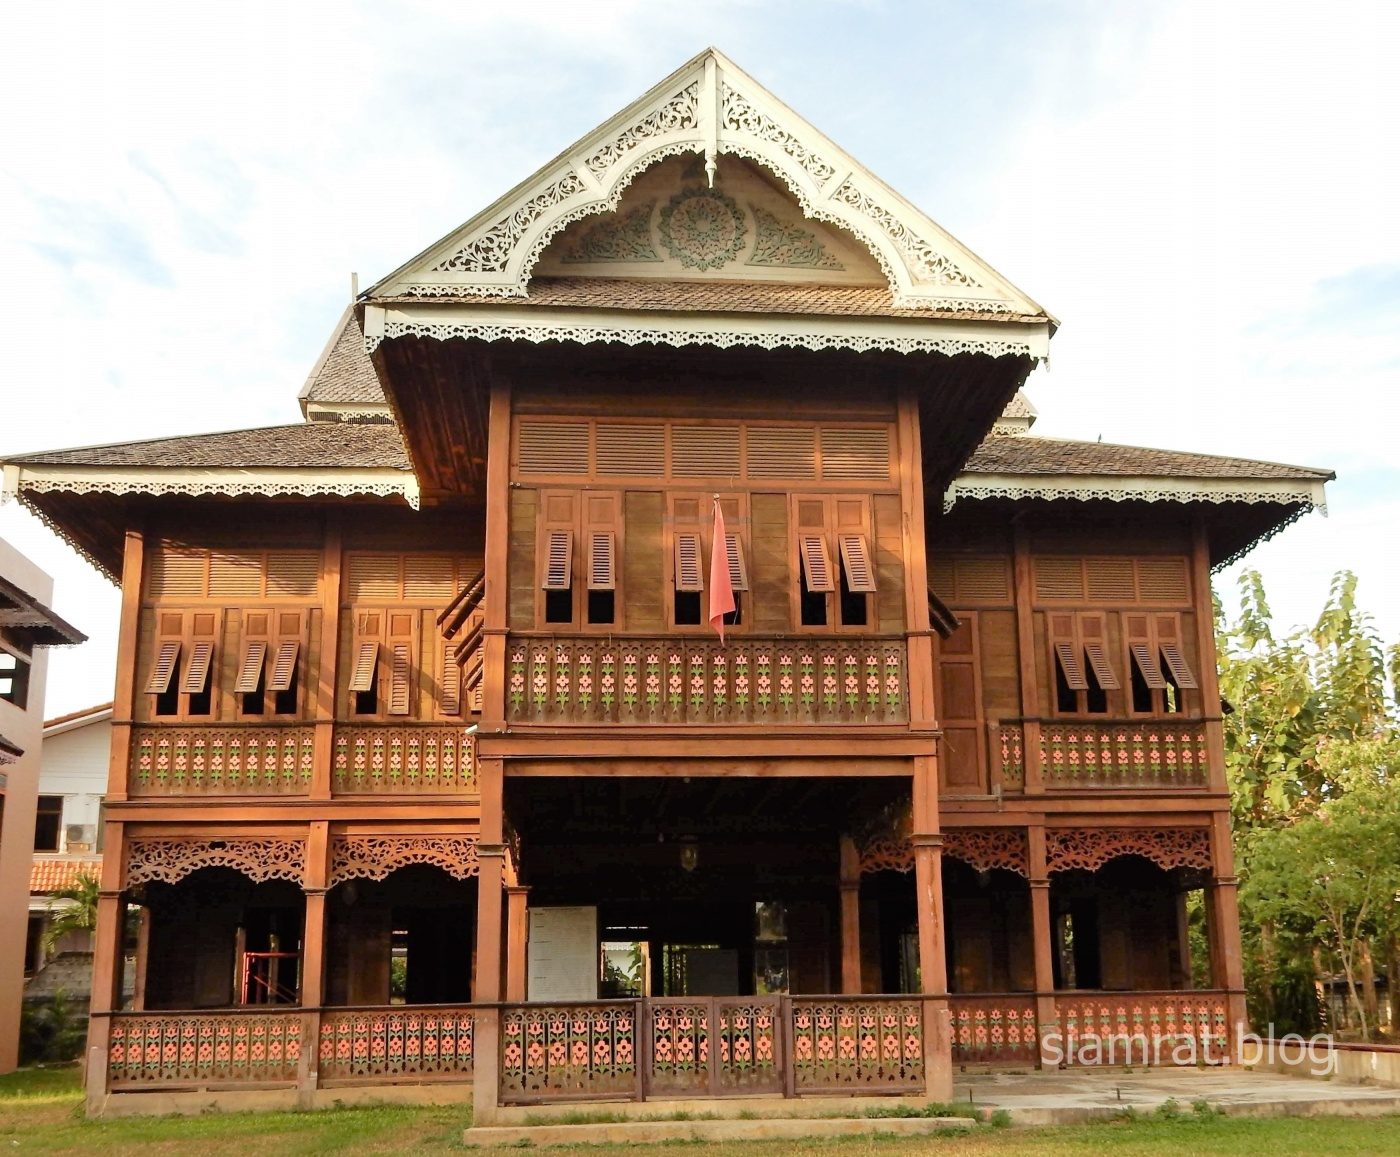 Thailand S Gingerbread Houses Siam Rat Blog